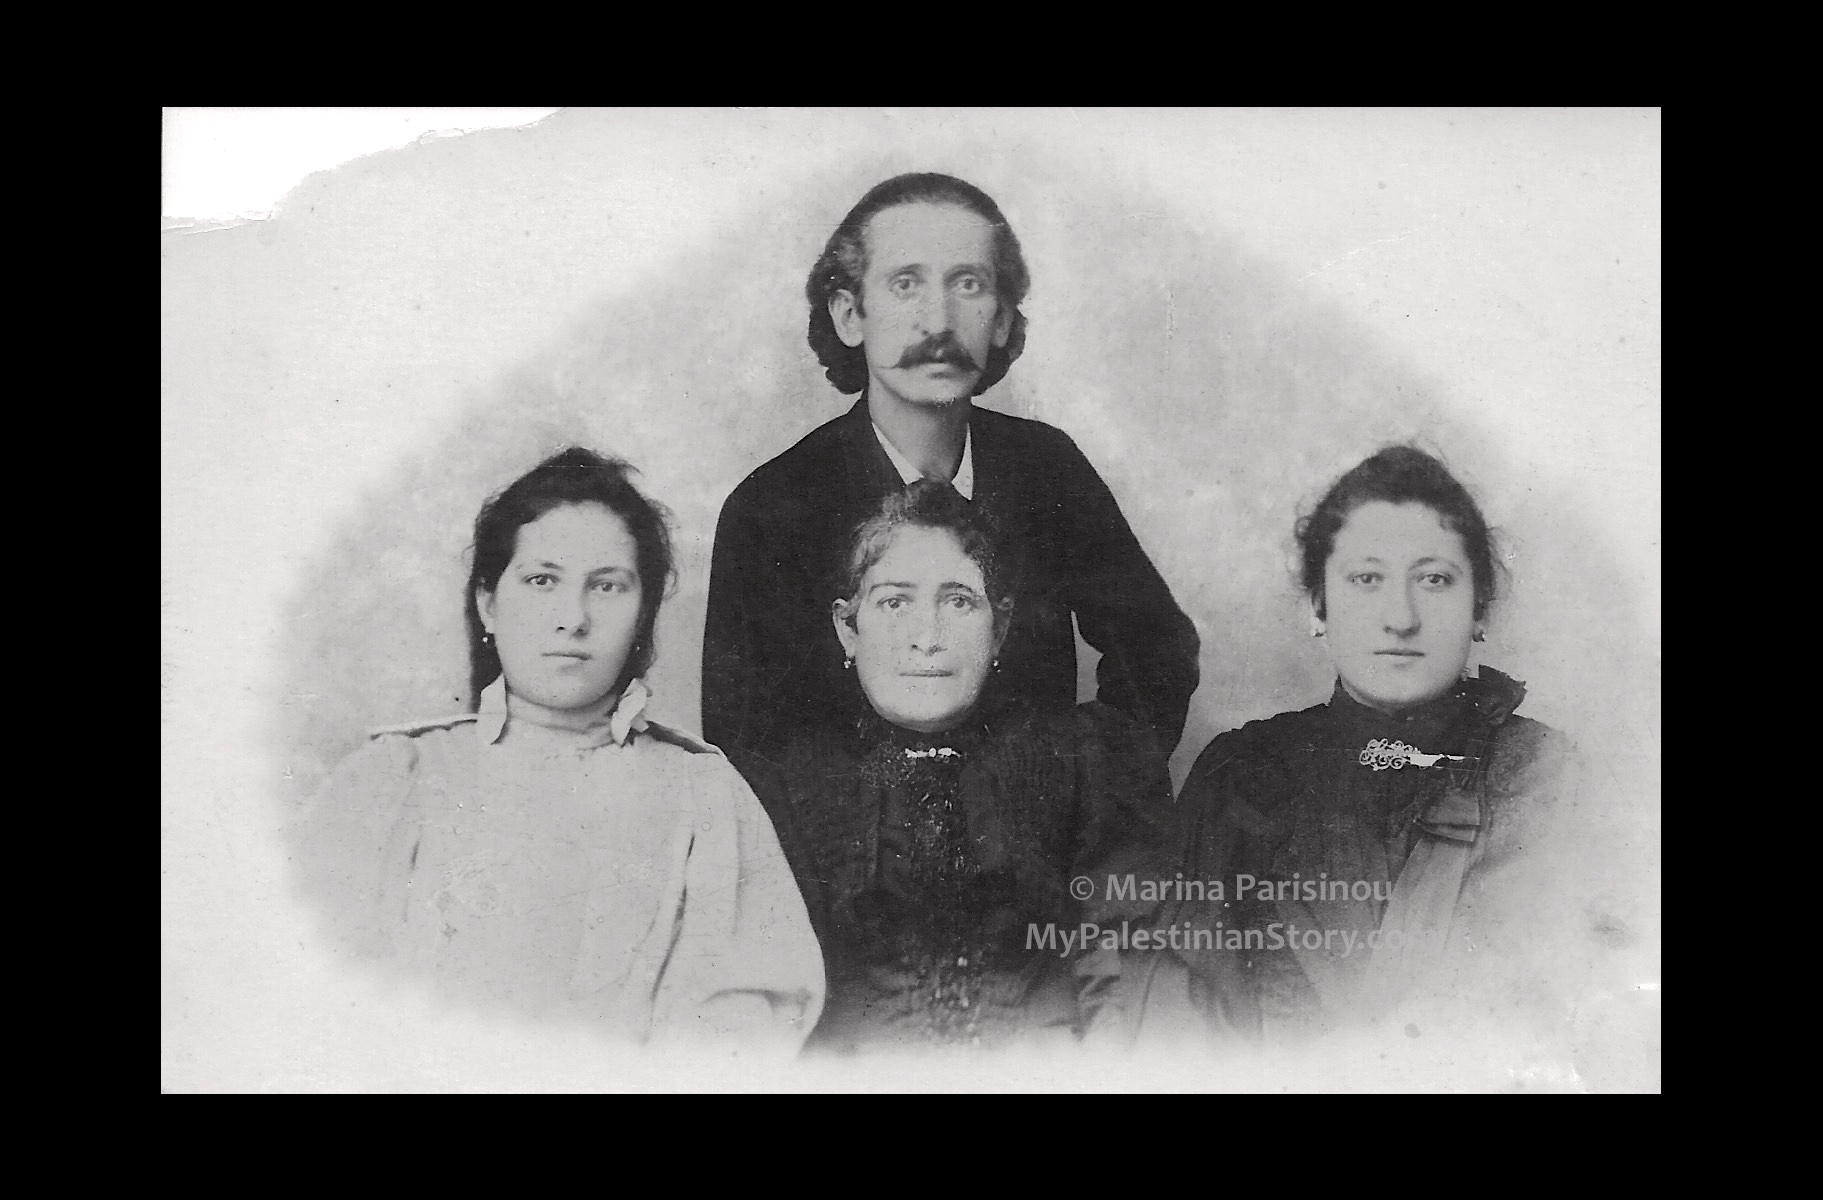 My great-grandmother's family. Top: father, Anestis. Middle: mother, Rosa. Left: sister, Marika. Right: Eugenie (my great-grandmother).